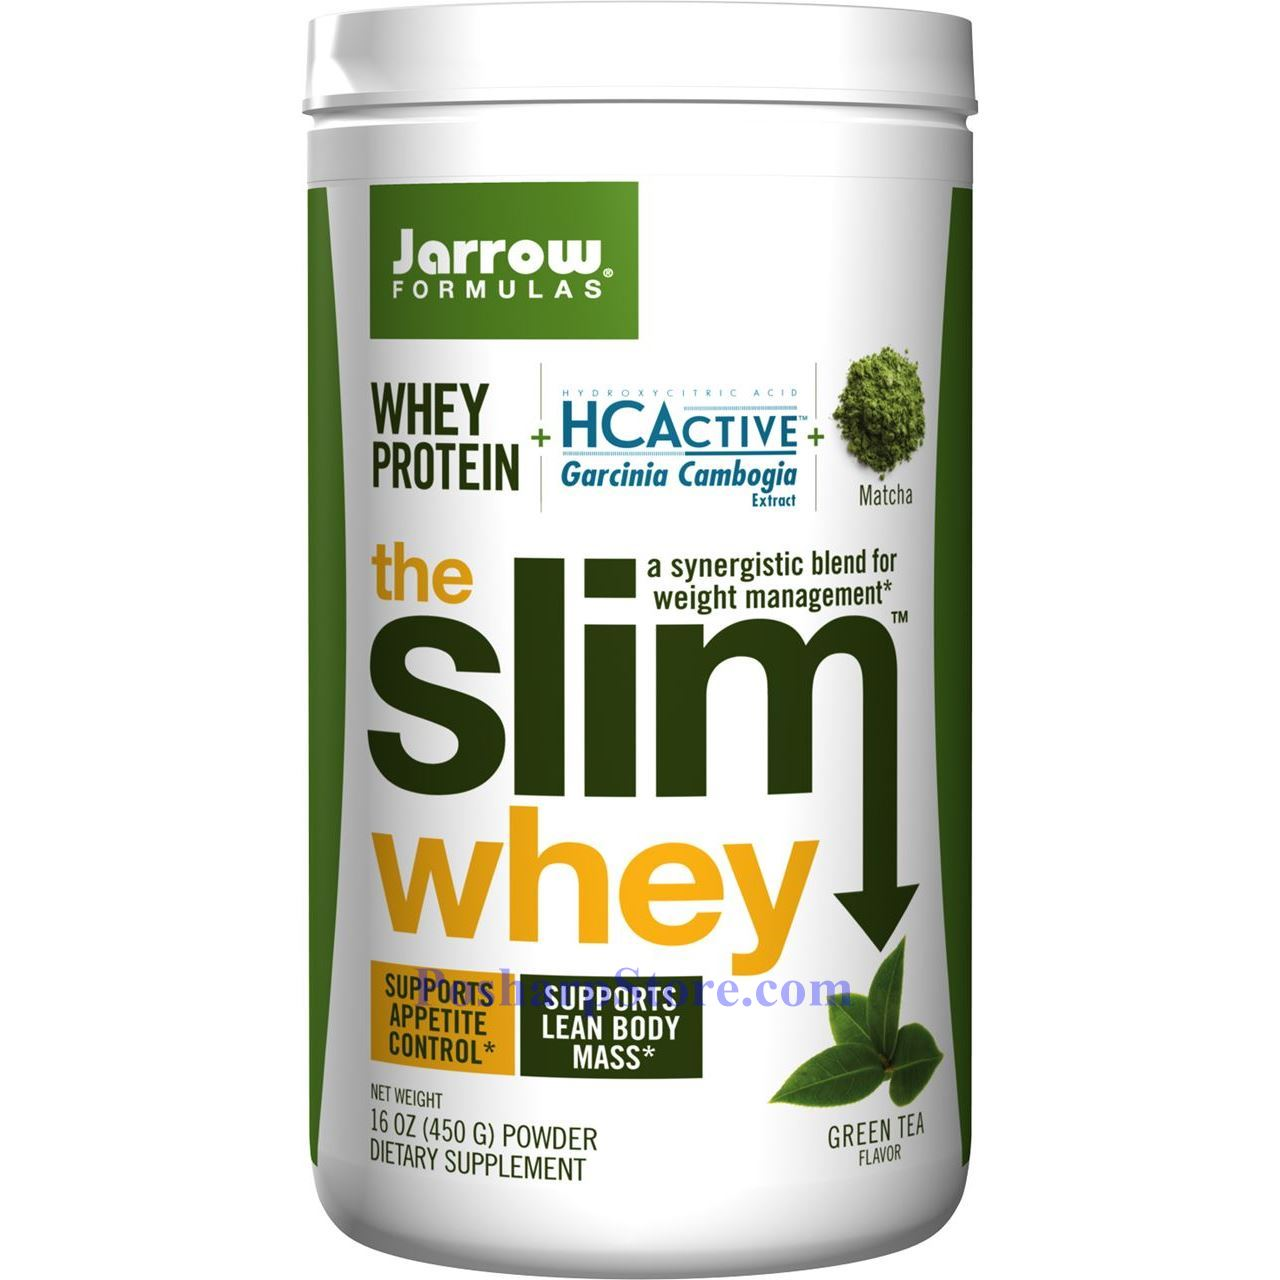 Jarrow Formulas The Slim Whey Protein Plus Hcactive Garcinia